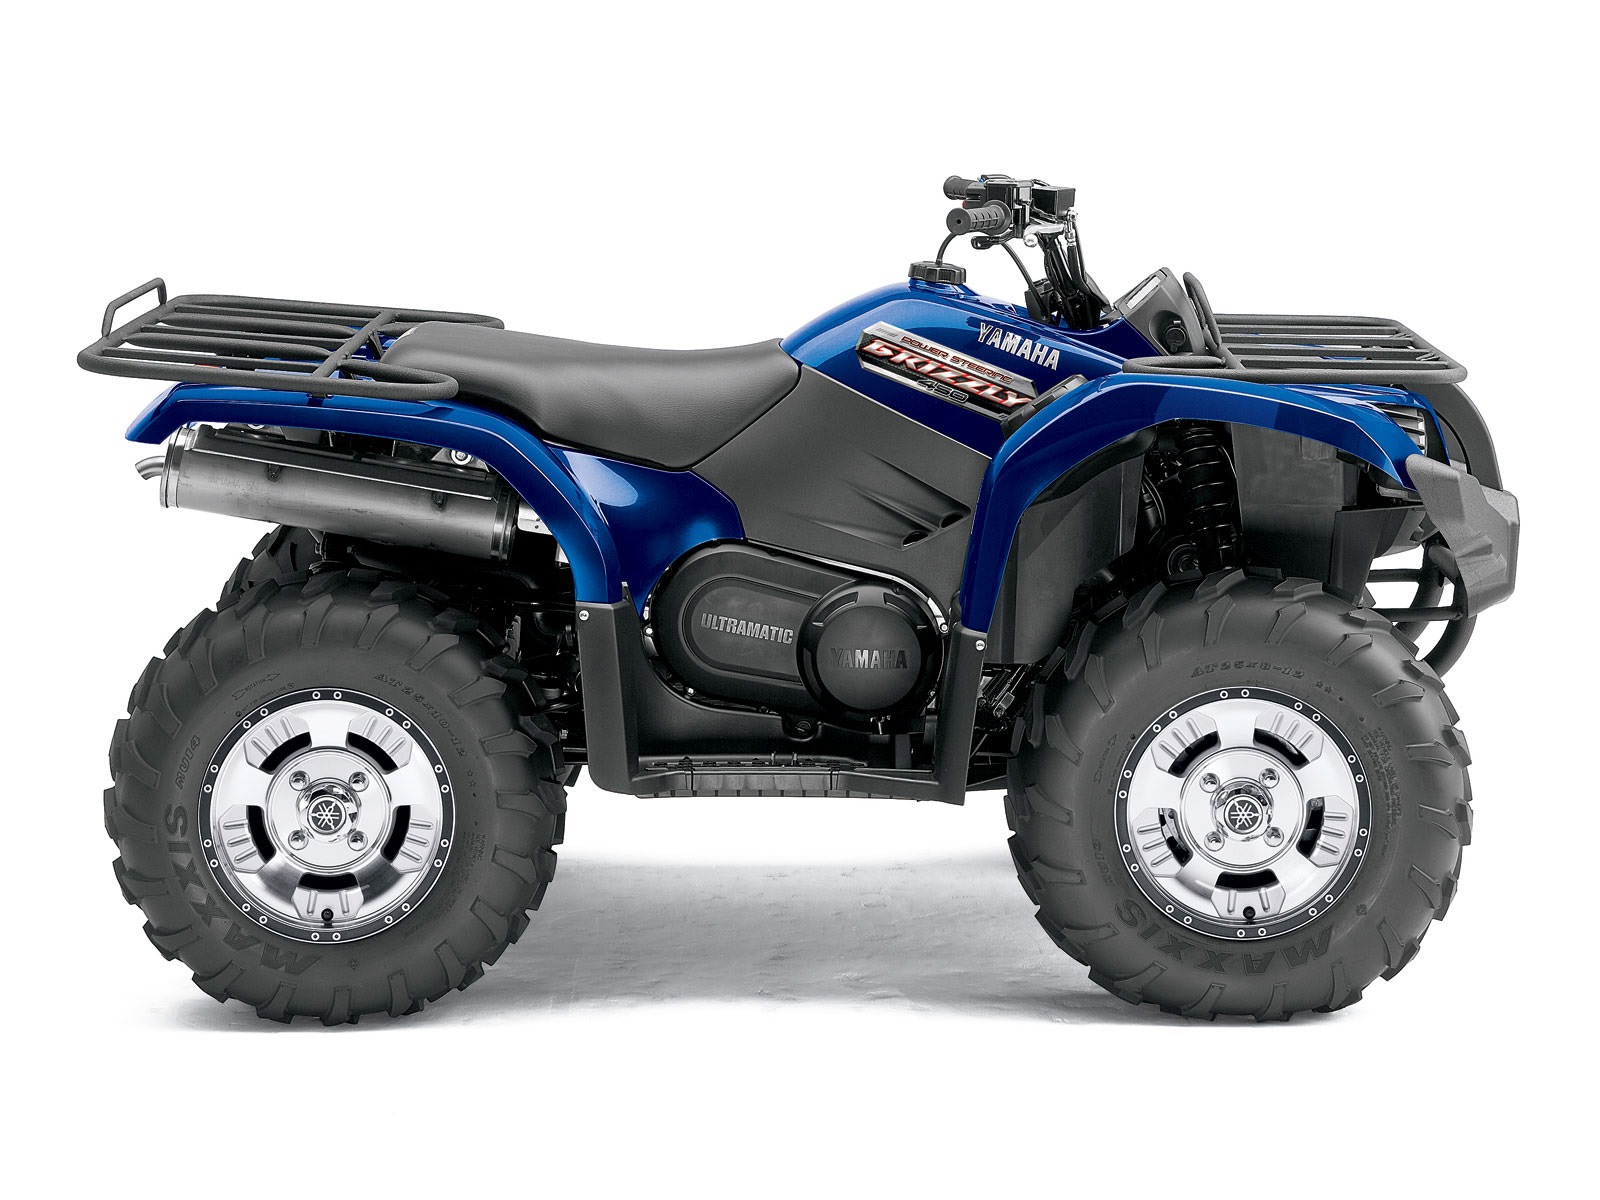 2012 yamaha grizzly 450 auto 4x4 eps atv pictures for Yamaha 4 wheeler 4x4